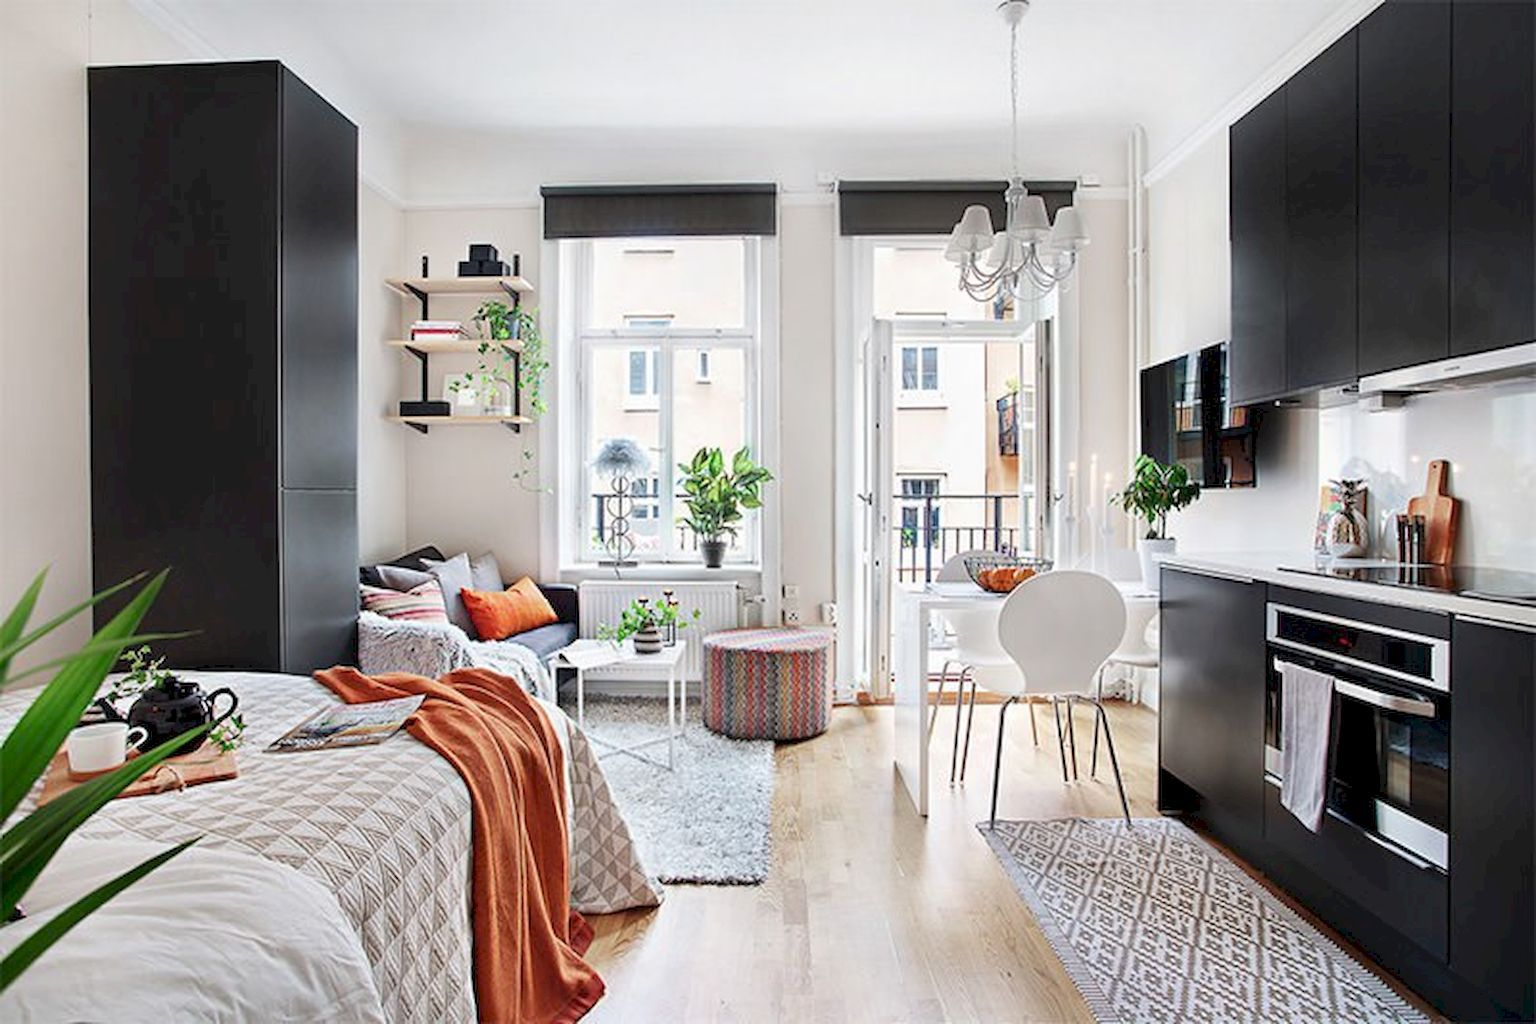 77 Magnificent Small Studio Apartment Decor Ideas With Images